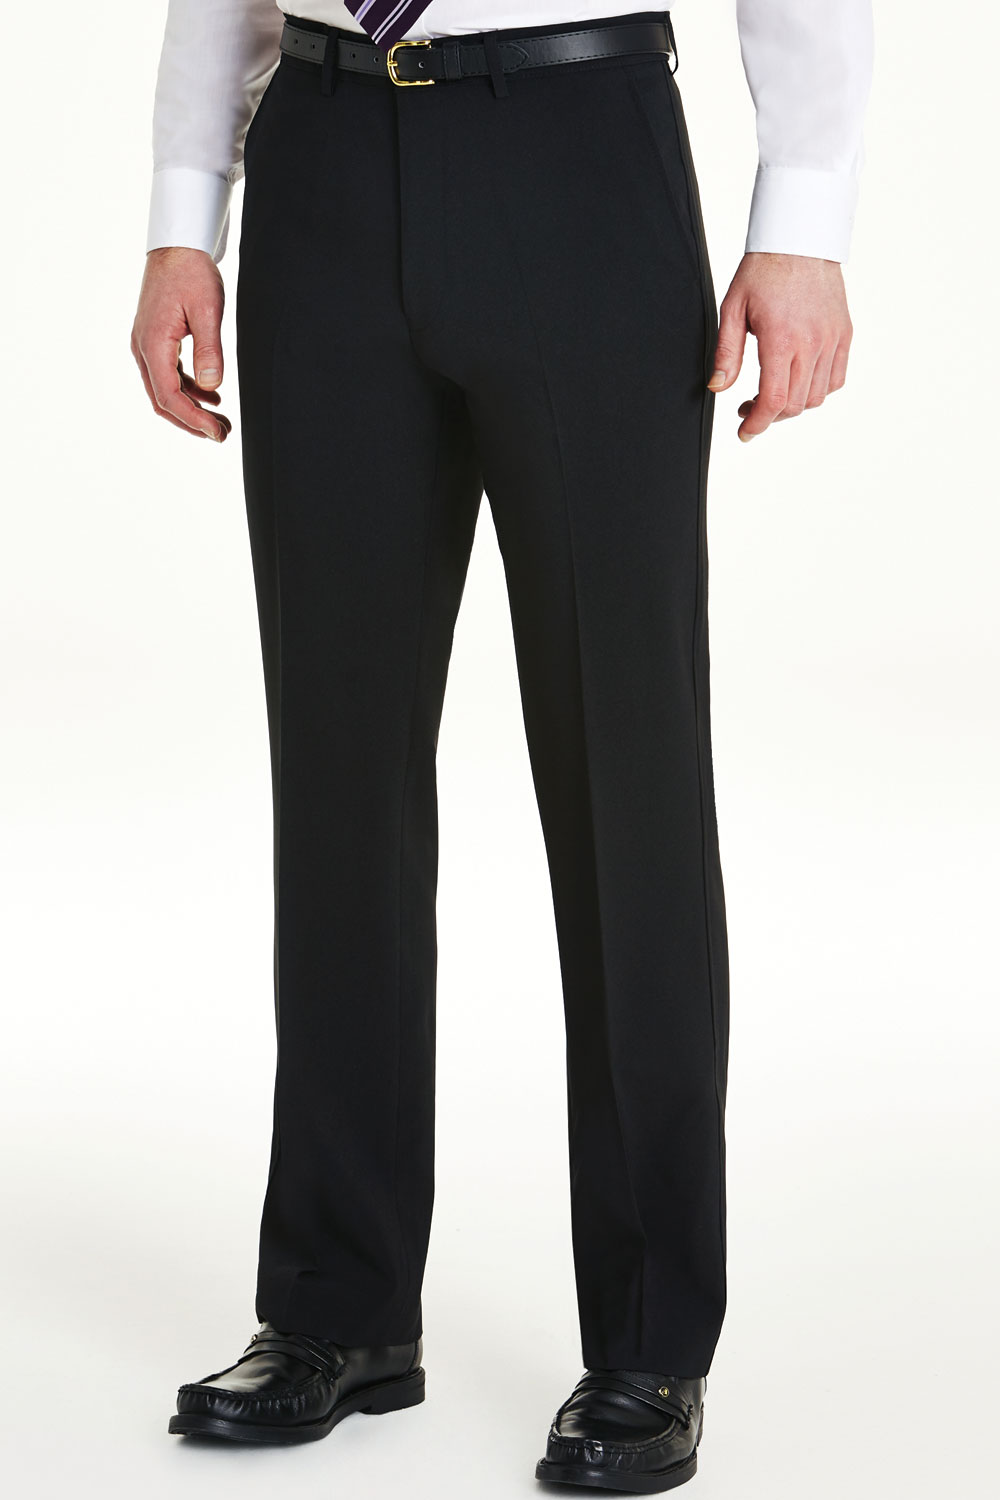 Mens-Farah-Slant-Pocket-Formal-Classic-Trouser-Pants thumbnail 15